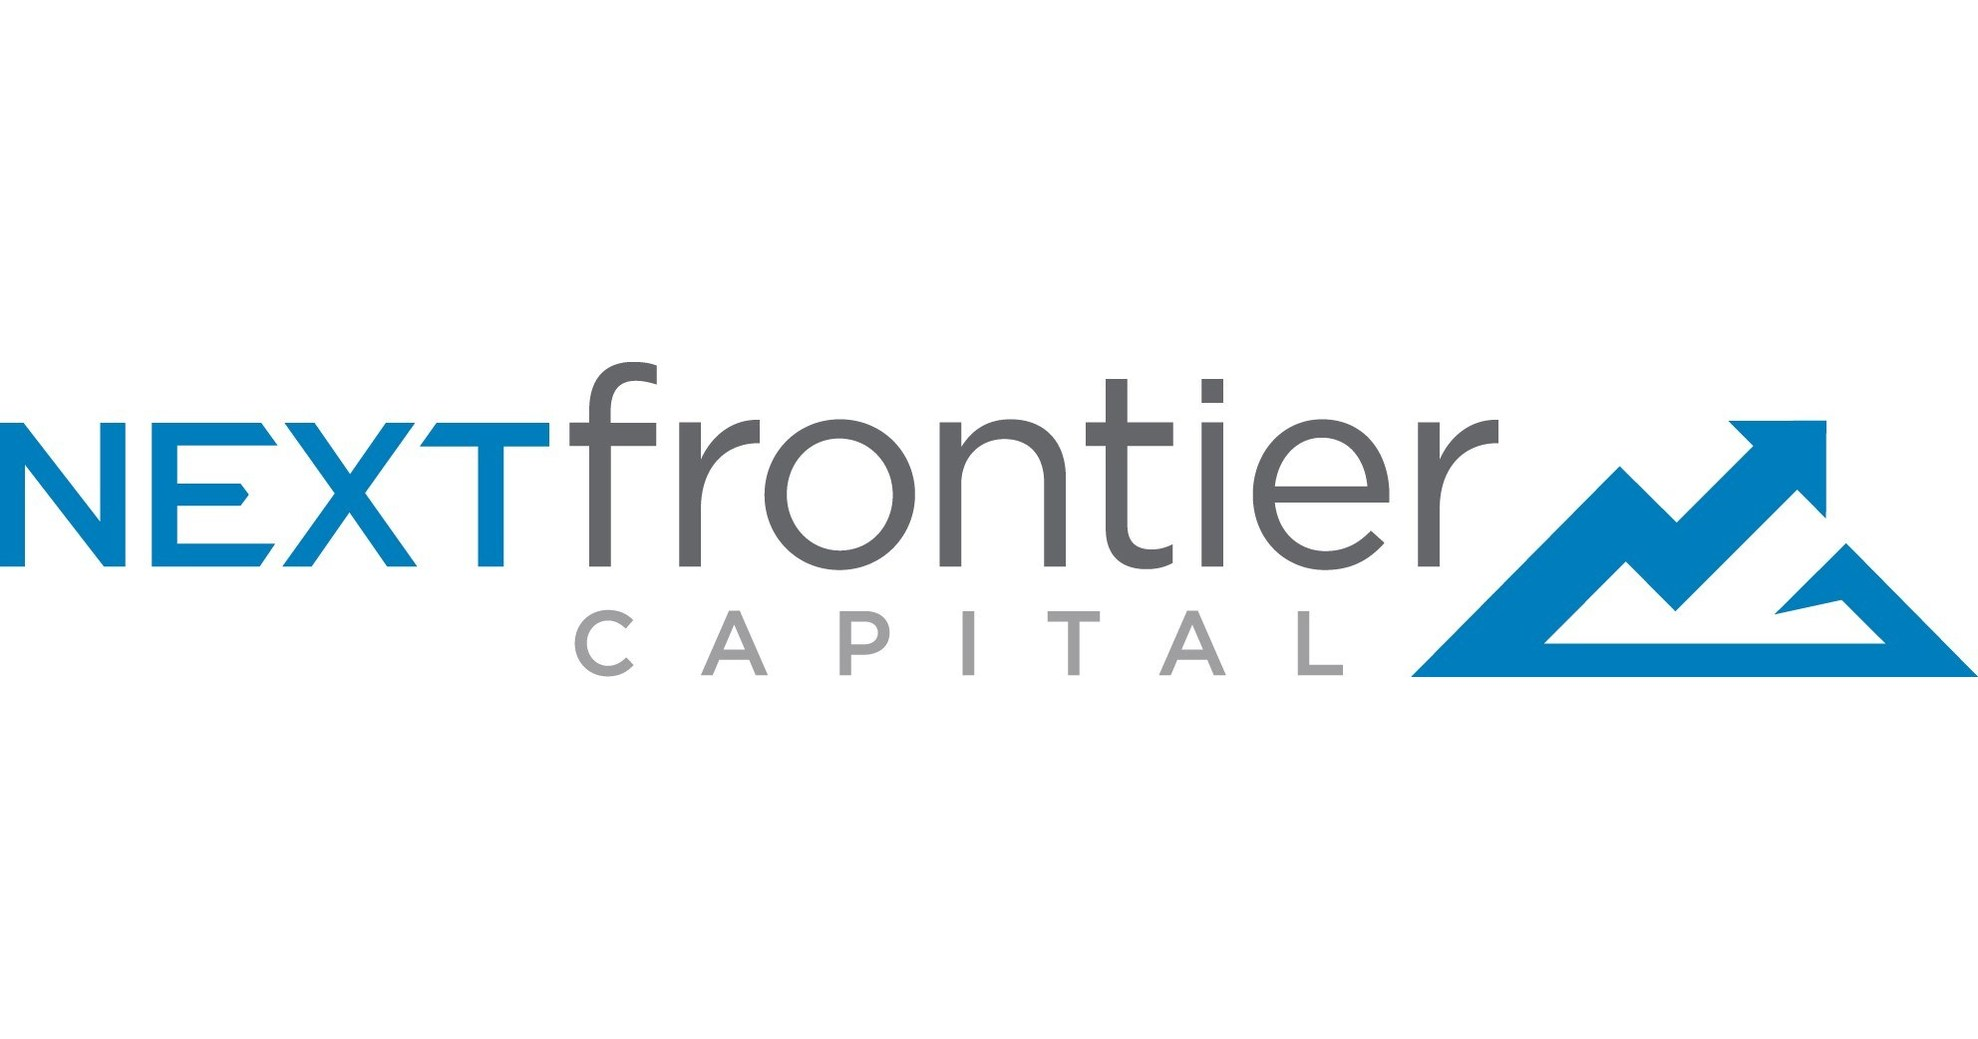 Frontier Capital Group Limited